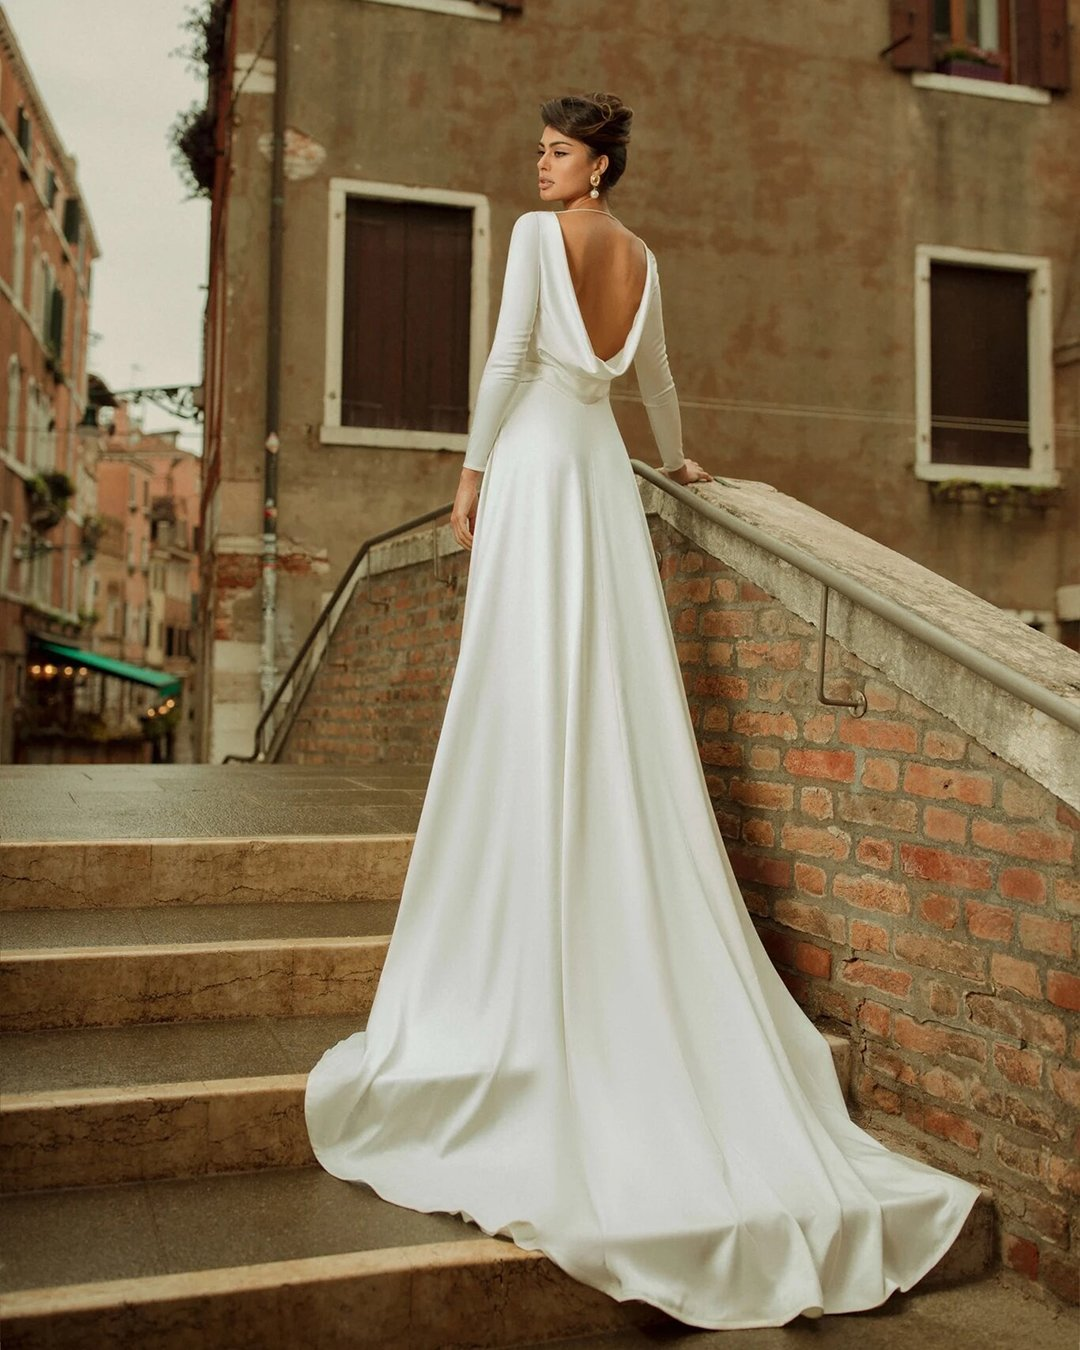 greek wedding dresses a line with long sleeves simple low back rara avis